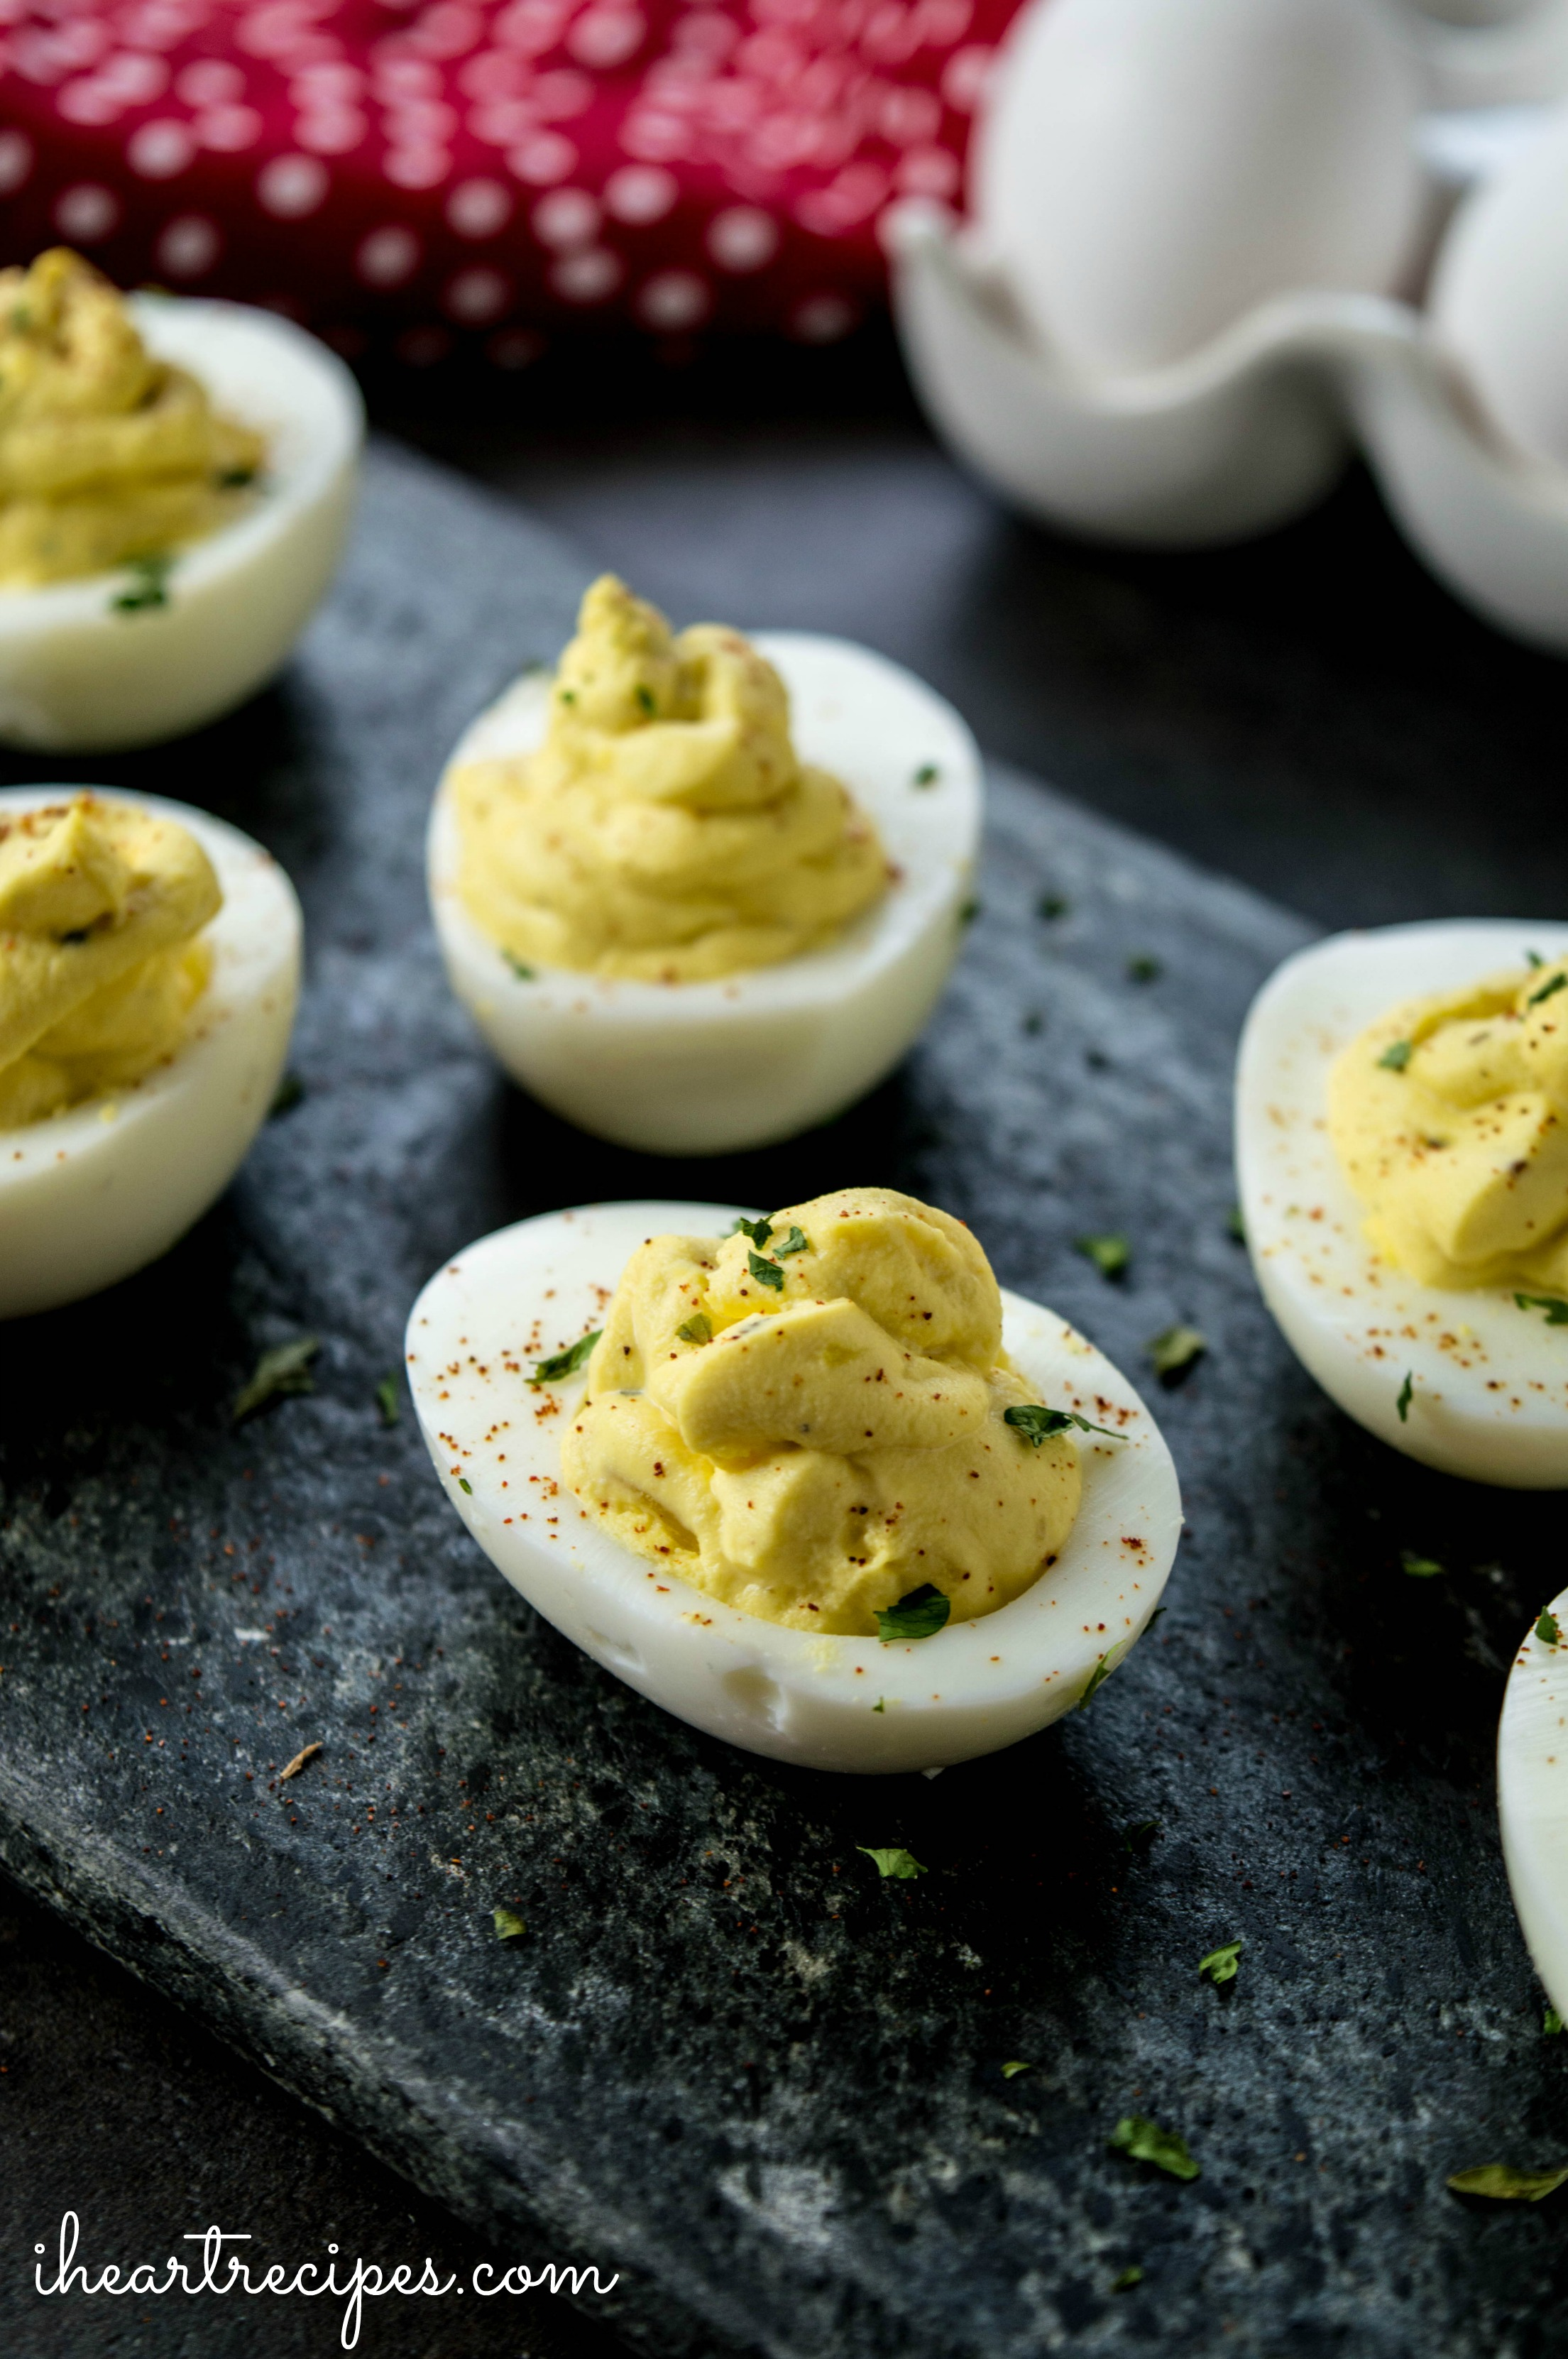 Look at these perfectly filled egg cups! These deviled eggs will be gone quick at your next party.